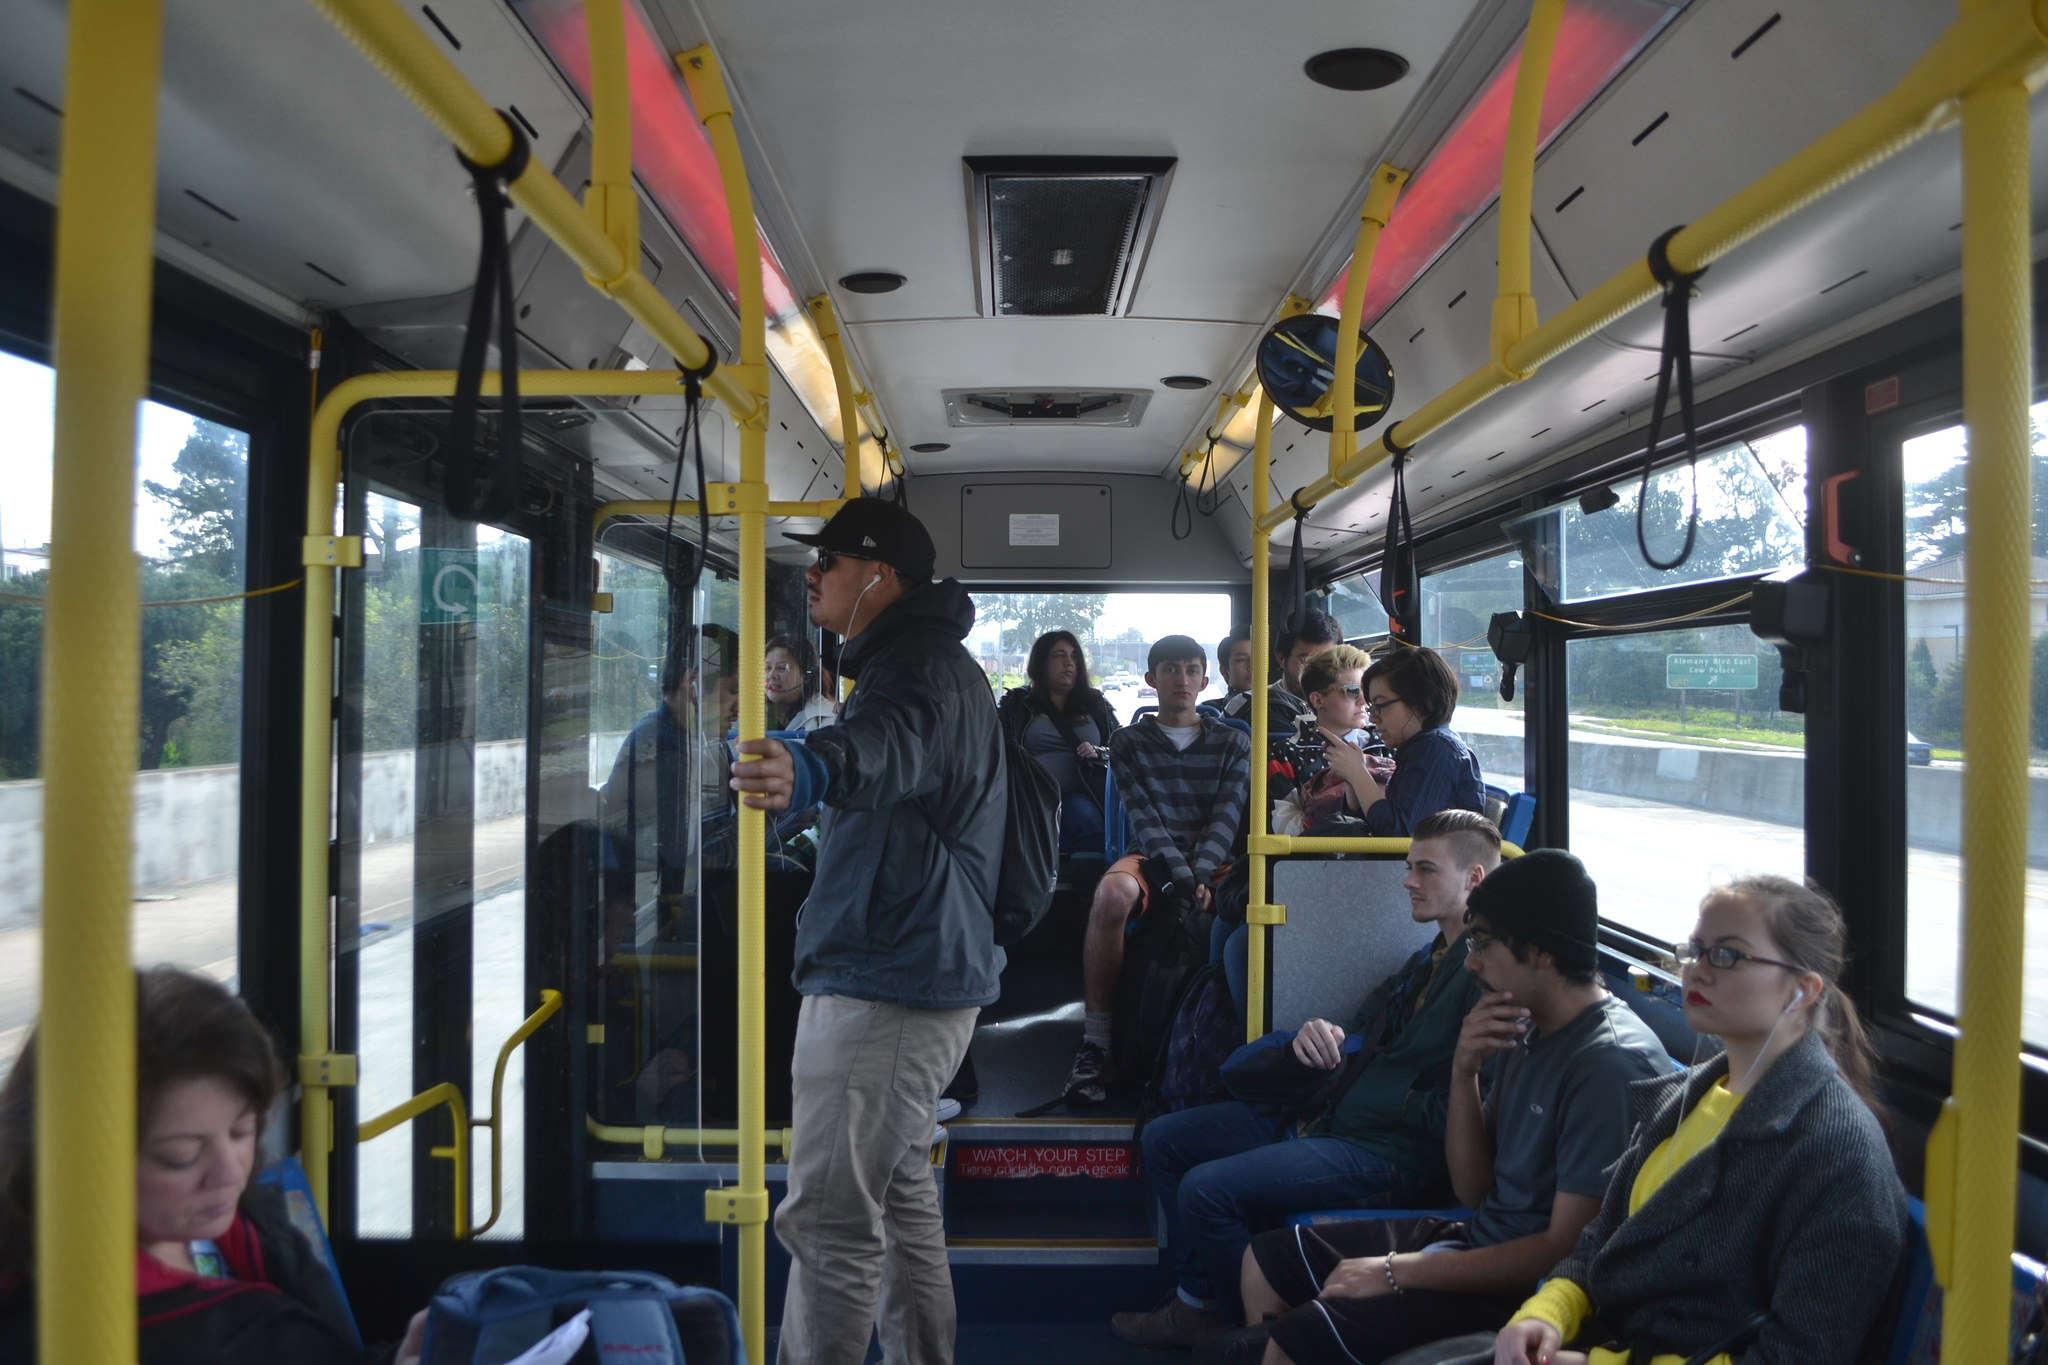 Shuttle drivers provide a glimpse into new buses